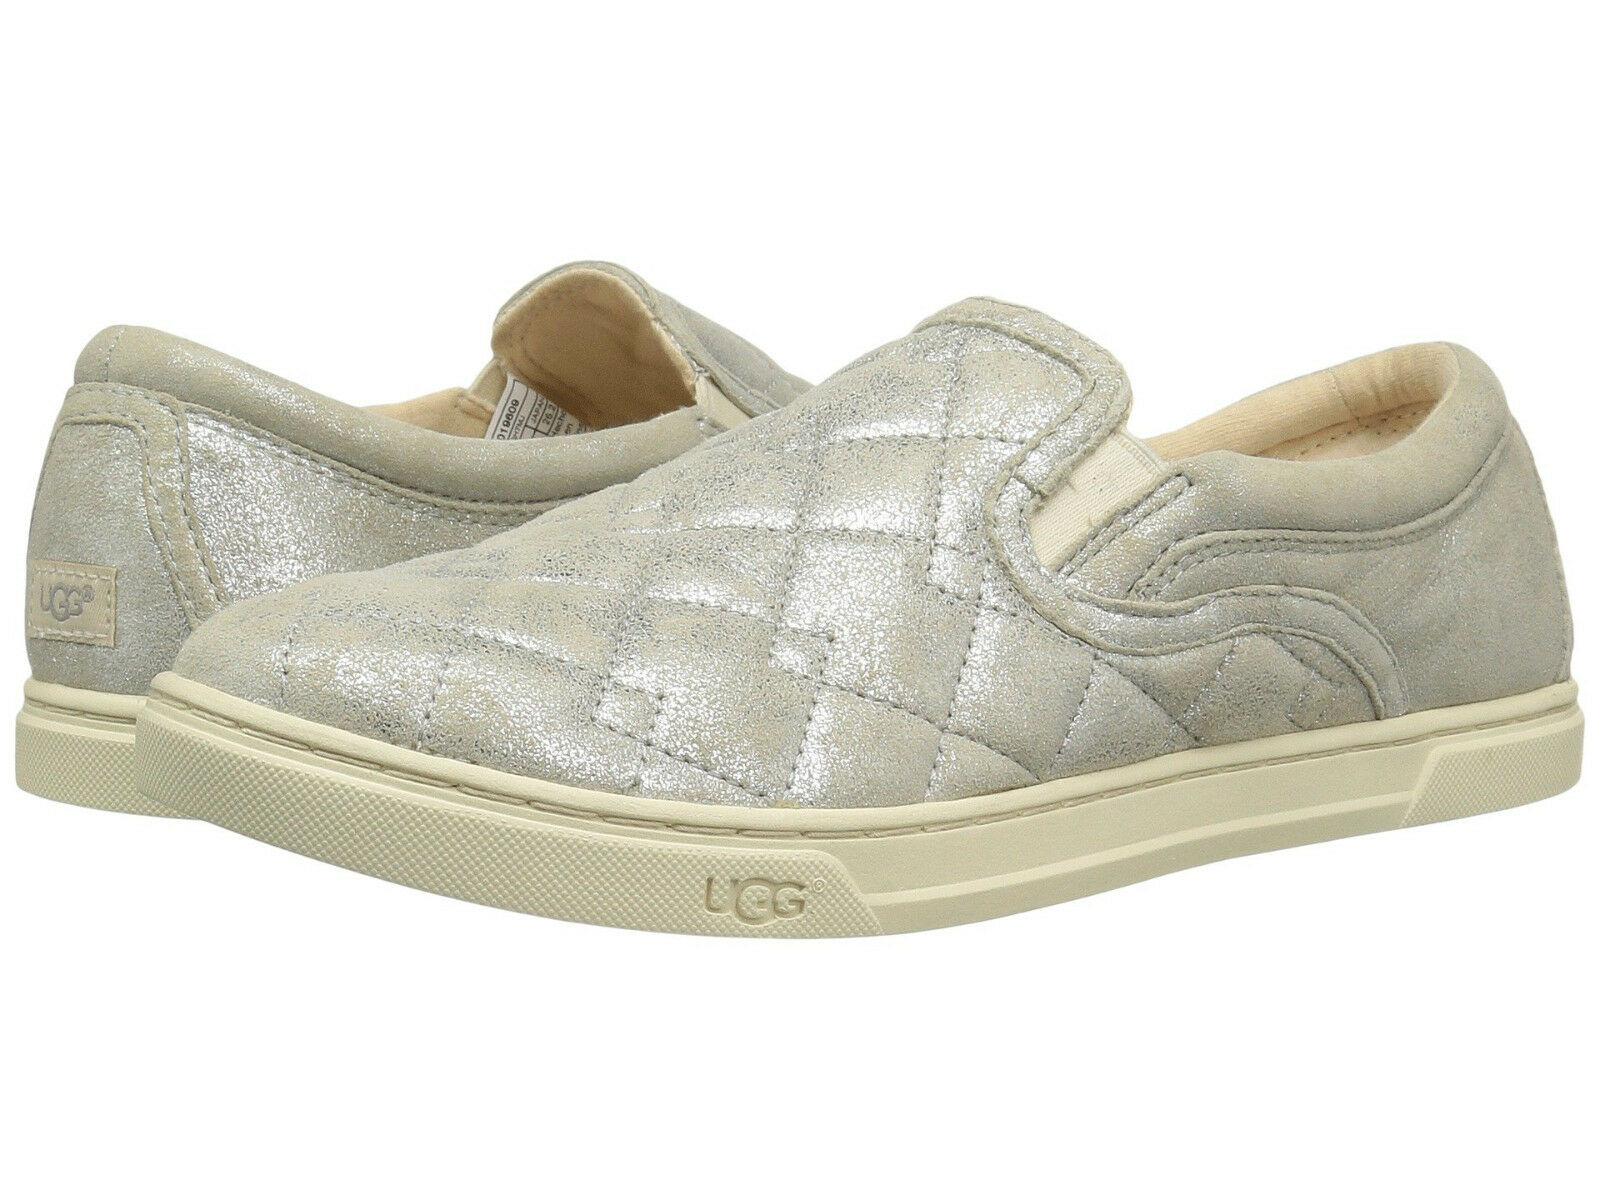 New Womens Ugg Fierce Deco Quilt Silver Leather Casual Slip On Sneakers 1019609